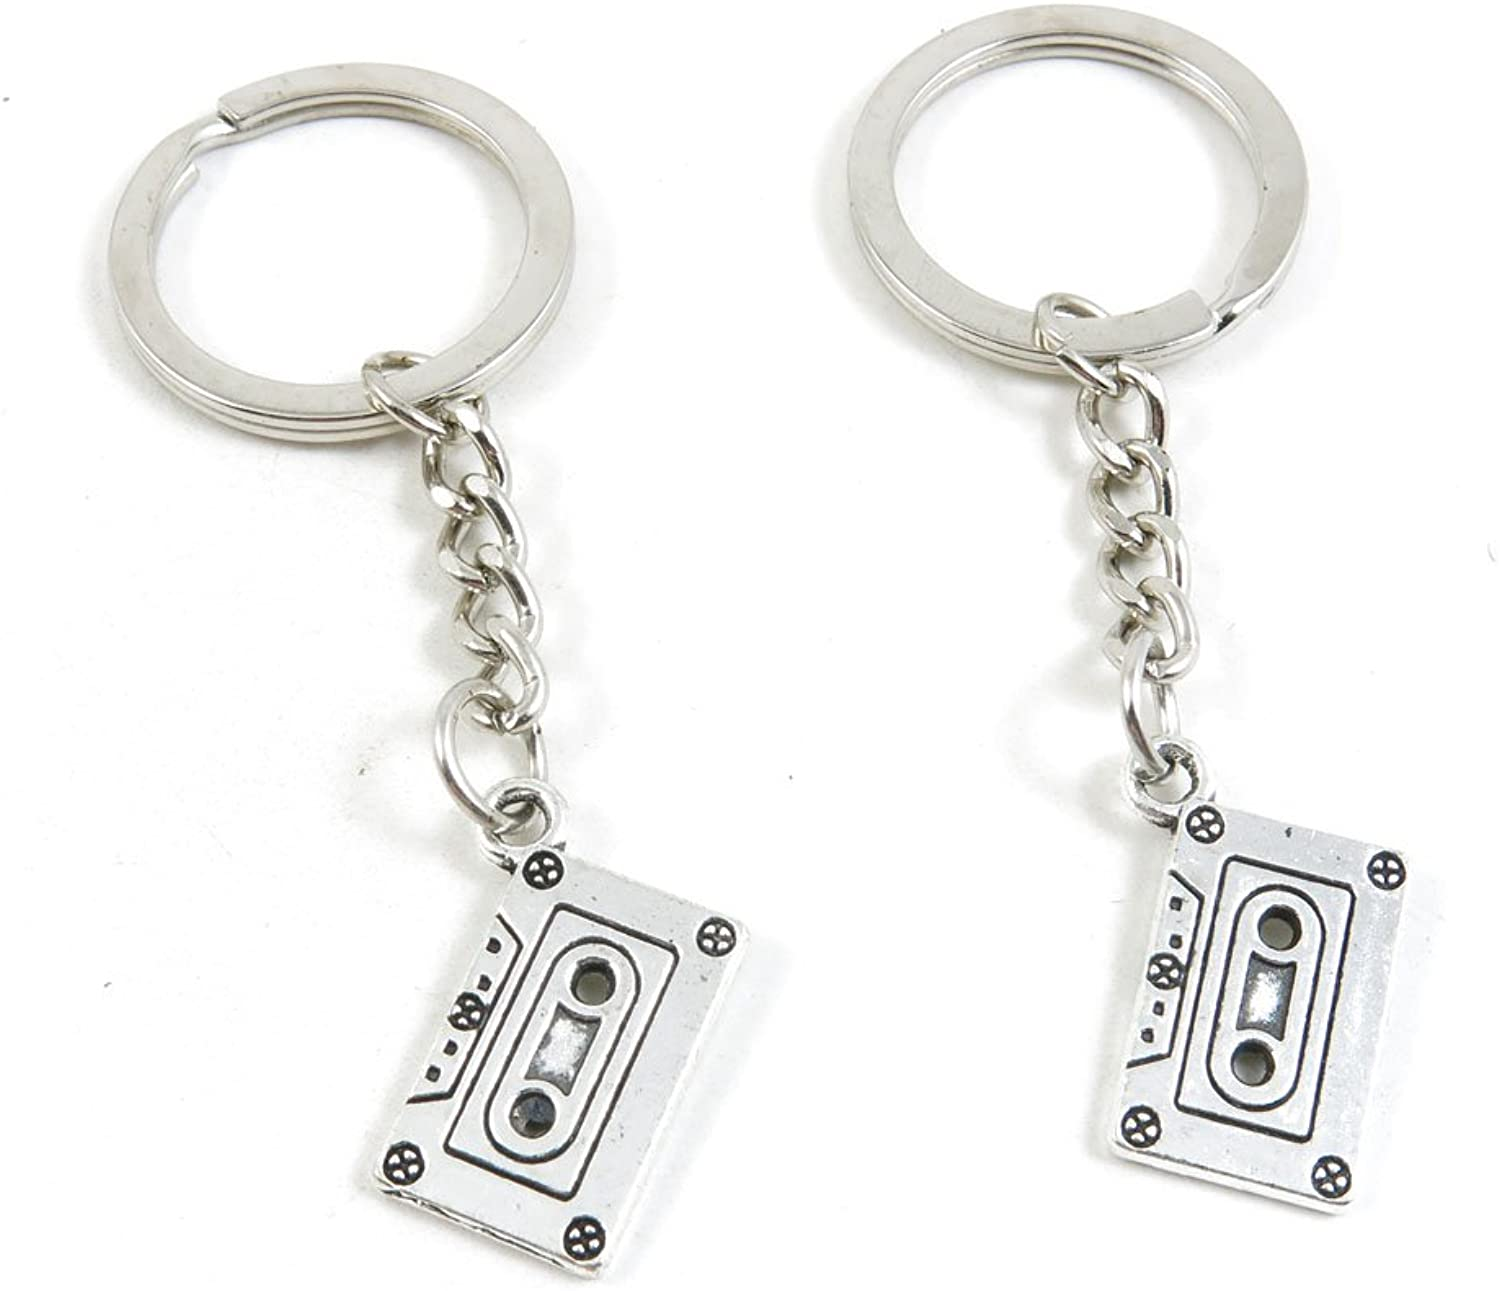 100 Pieces Keychain Keyring Door Car Key Chain Ring Tag Charms Bulk Supply Jewelry Making Clasp Findings N5SI8D Audio Cassette Tapes